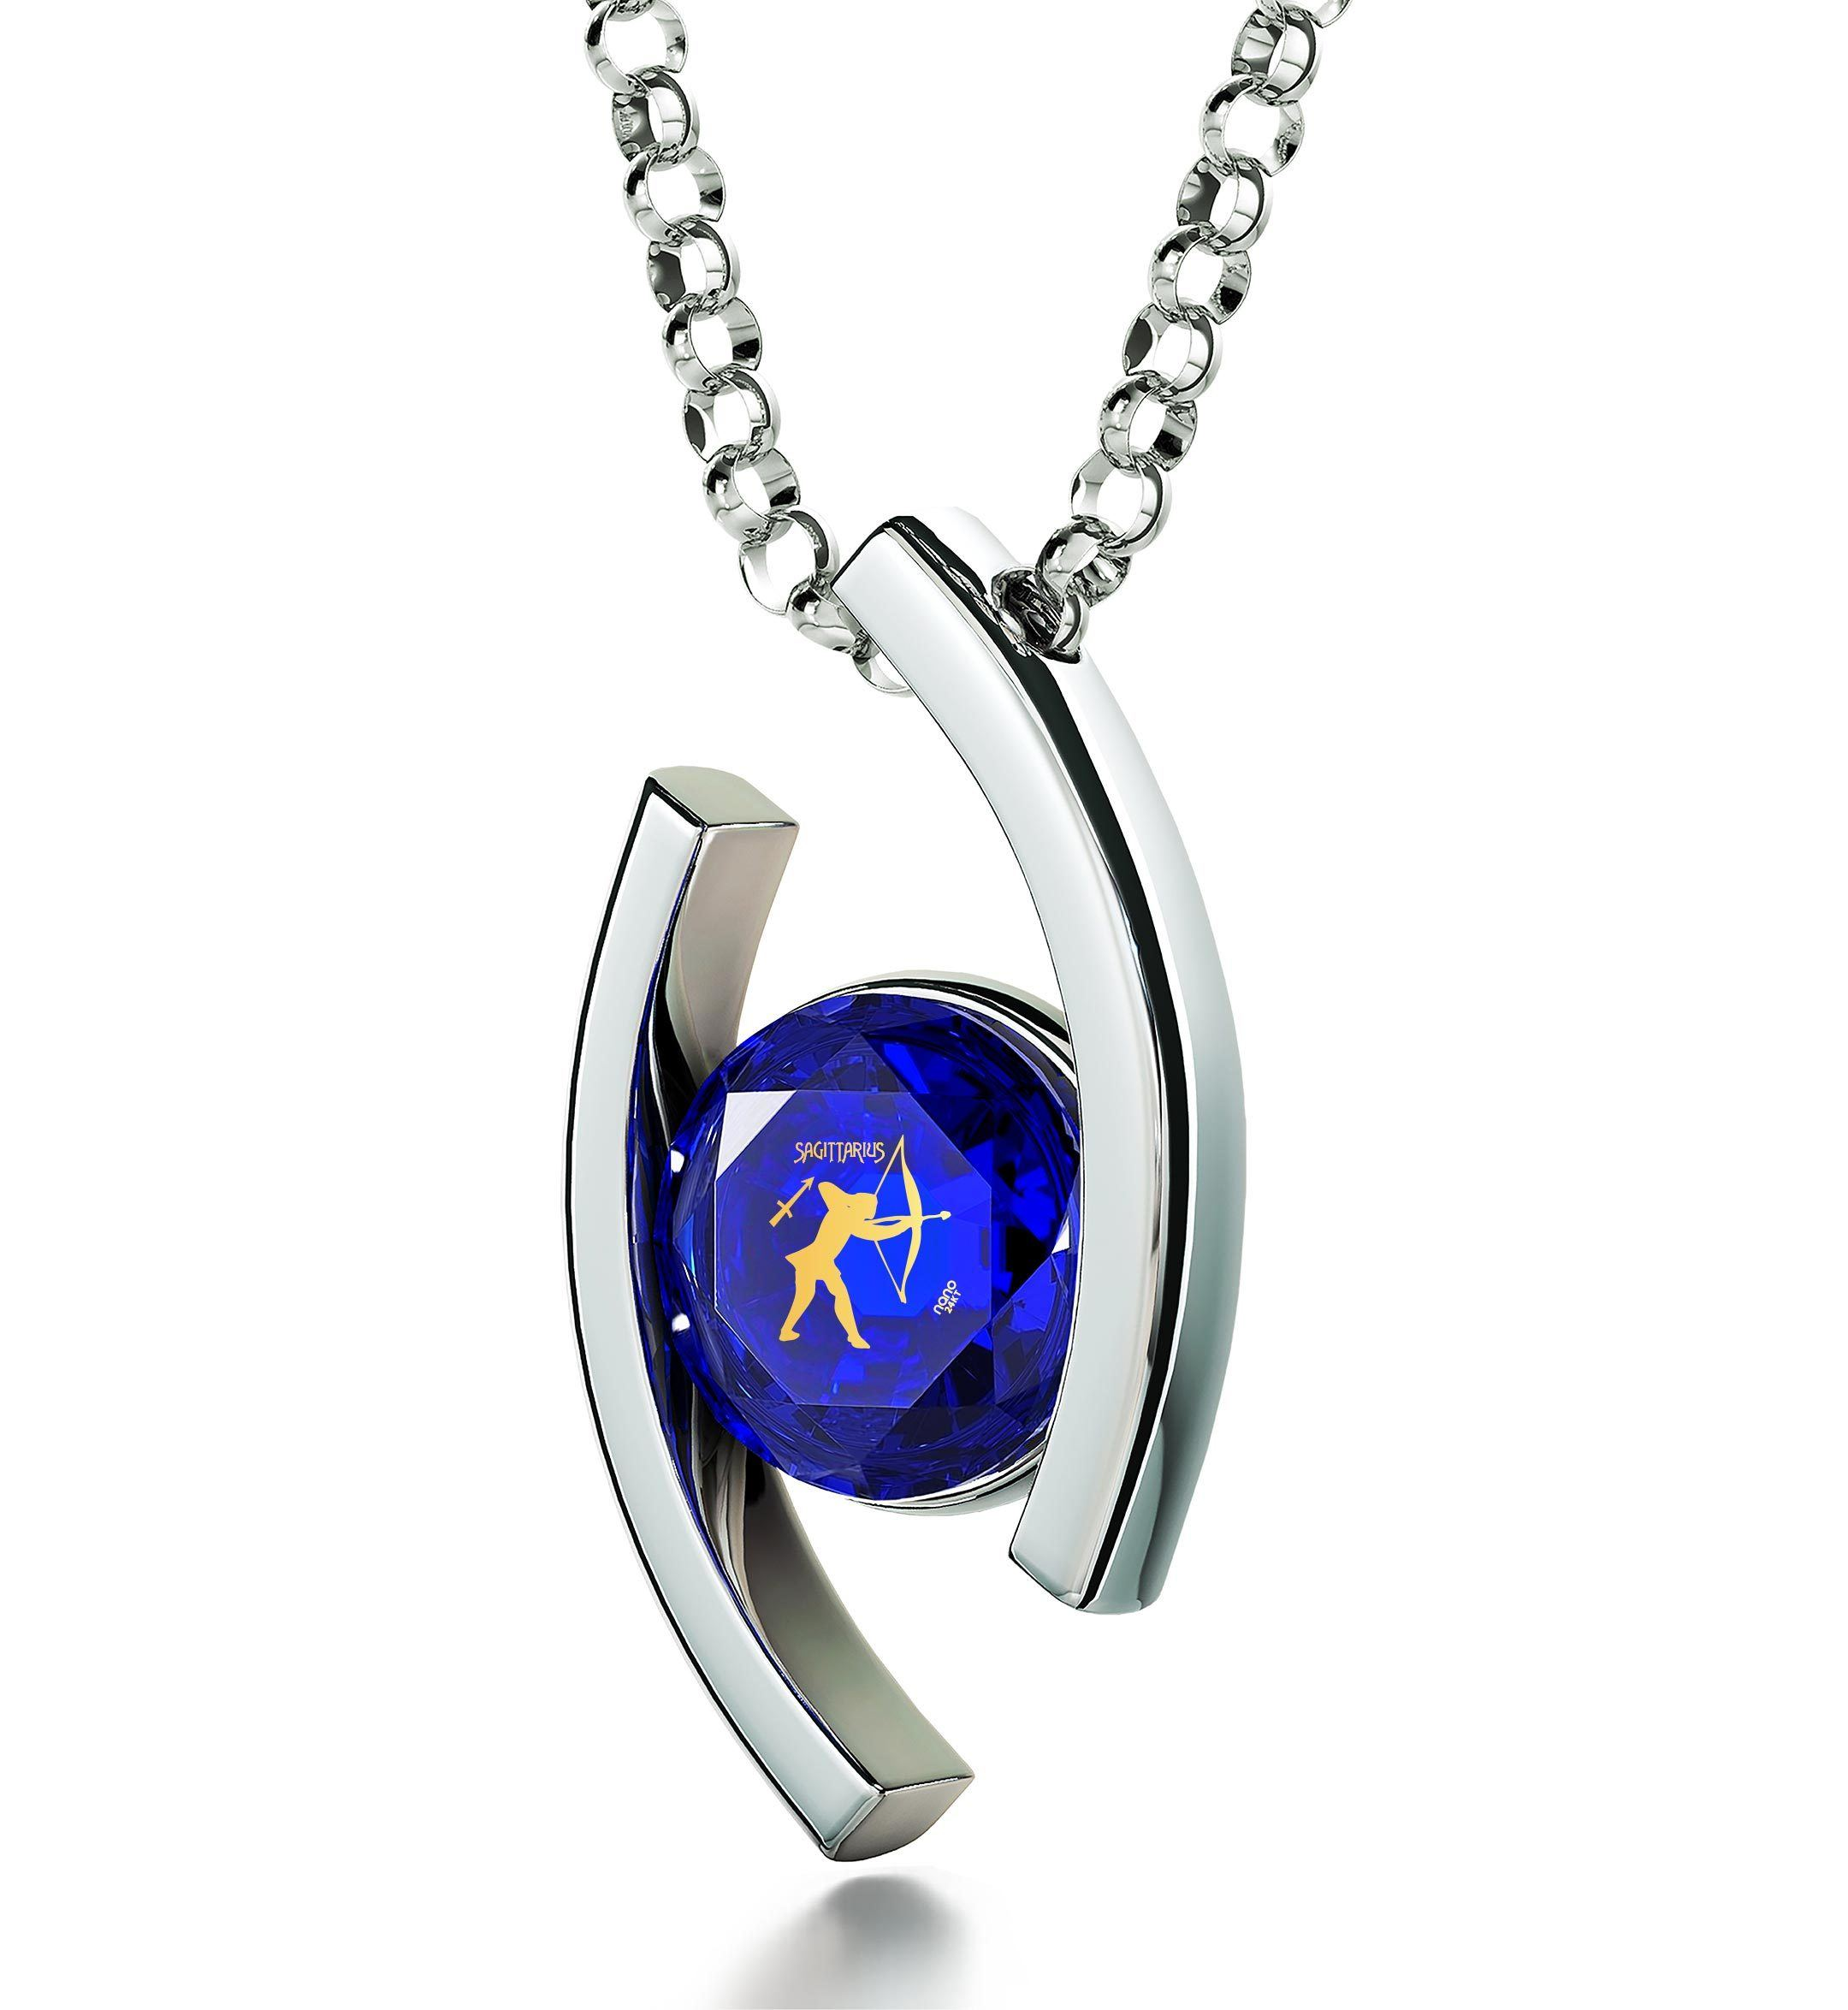 Sagittarius Necklace With Zodiac Imprint, Unusual Valentines Gifts, Presents for Mom Birthday, Blue Stone Jewellery